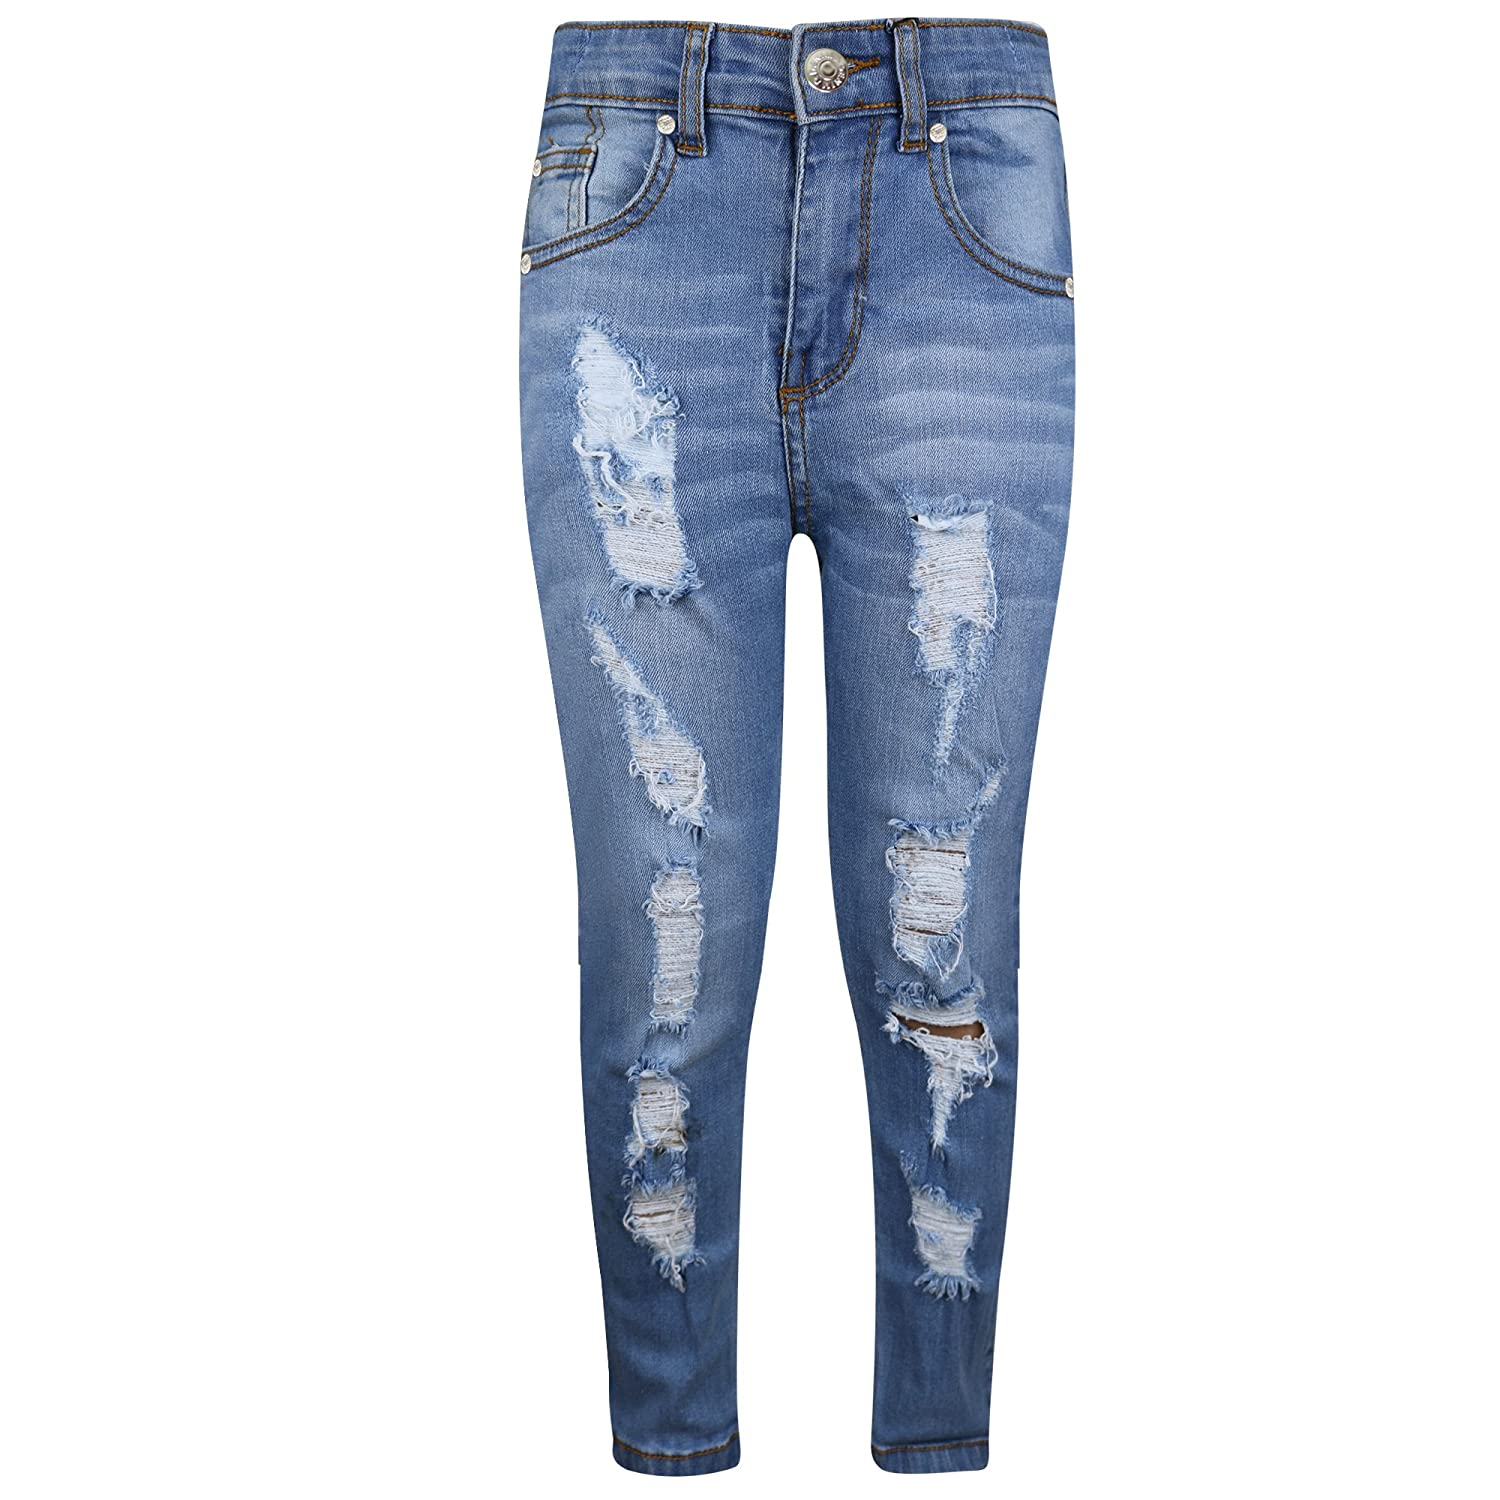 A2Z 4 Kids® Kids Stretchy Jeans Boys Jeggings Ripped Stylish Skinny Pants Fashion Trousers Age 5 6 7 8 9 10 11 12 13 Years